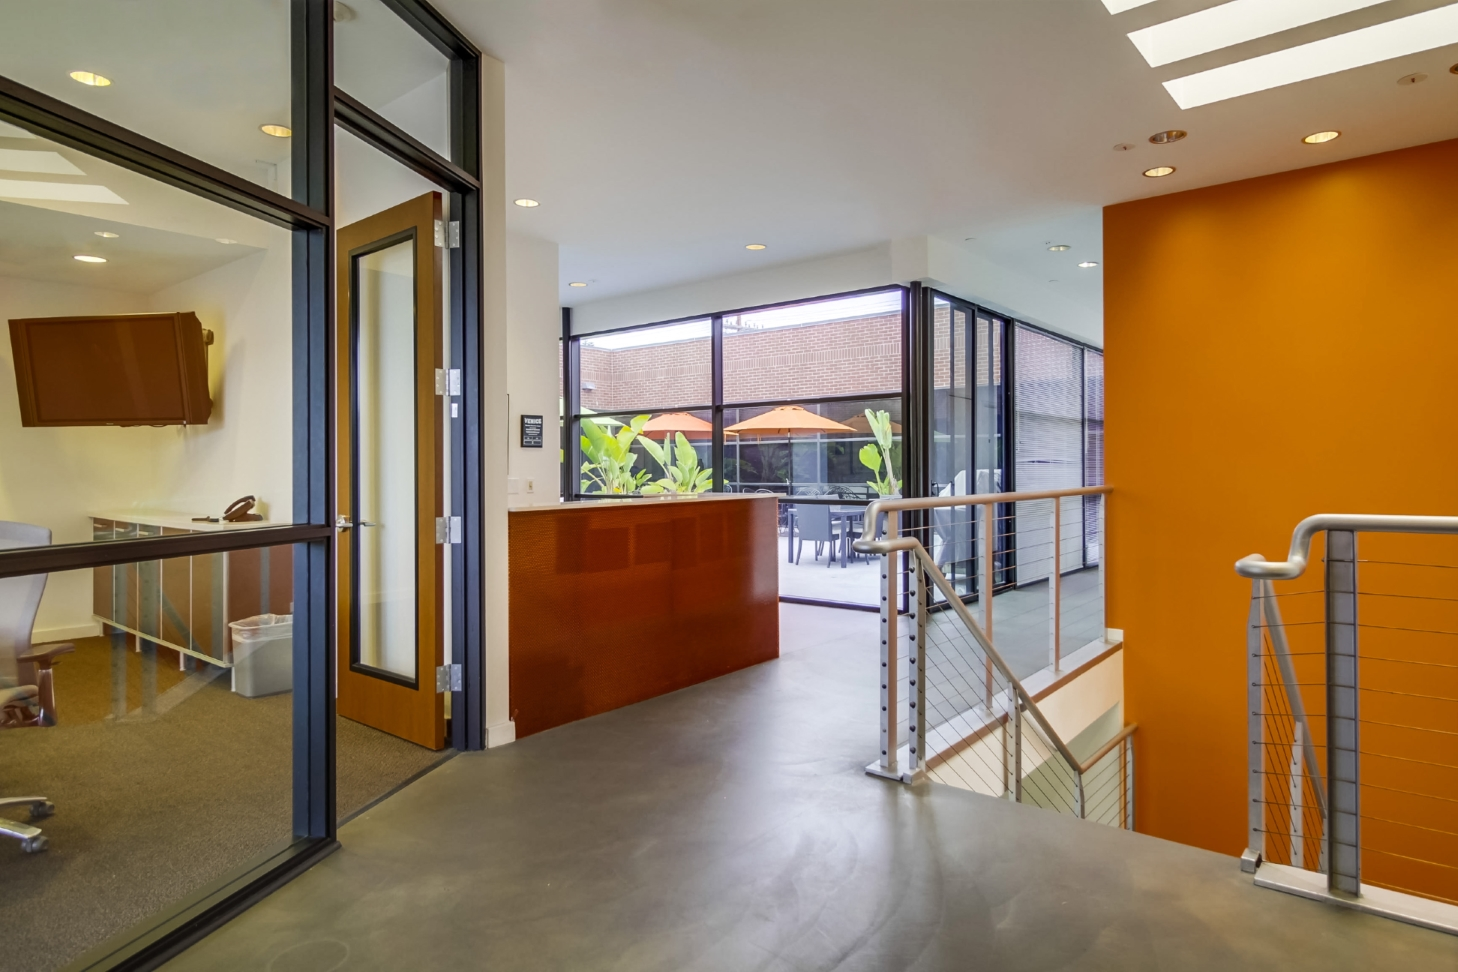 Hotels With Meeting Rooms Near Encino Ca